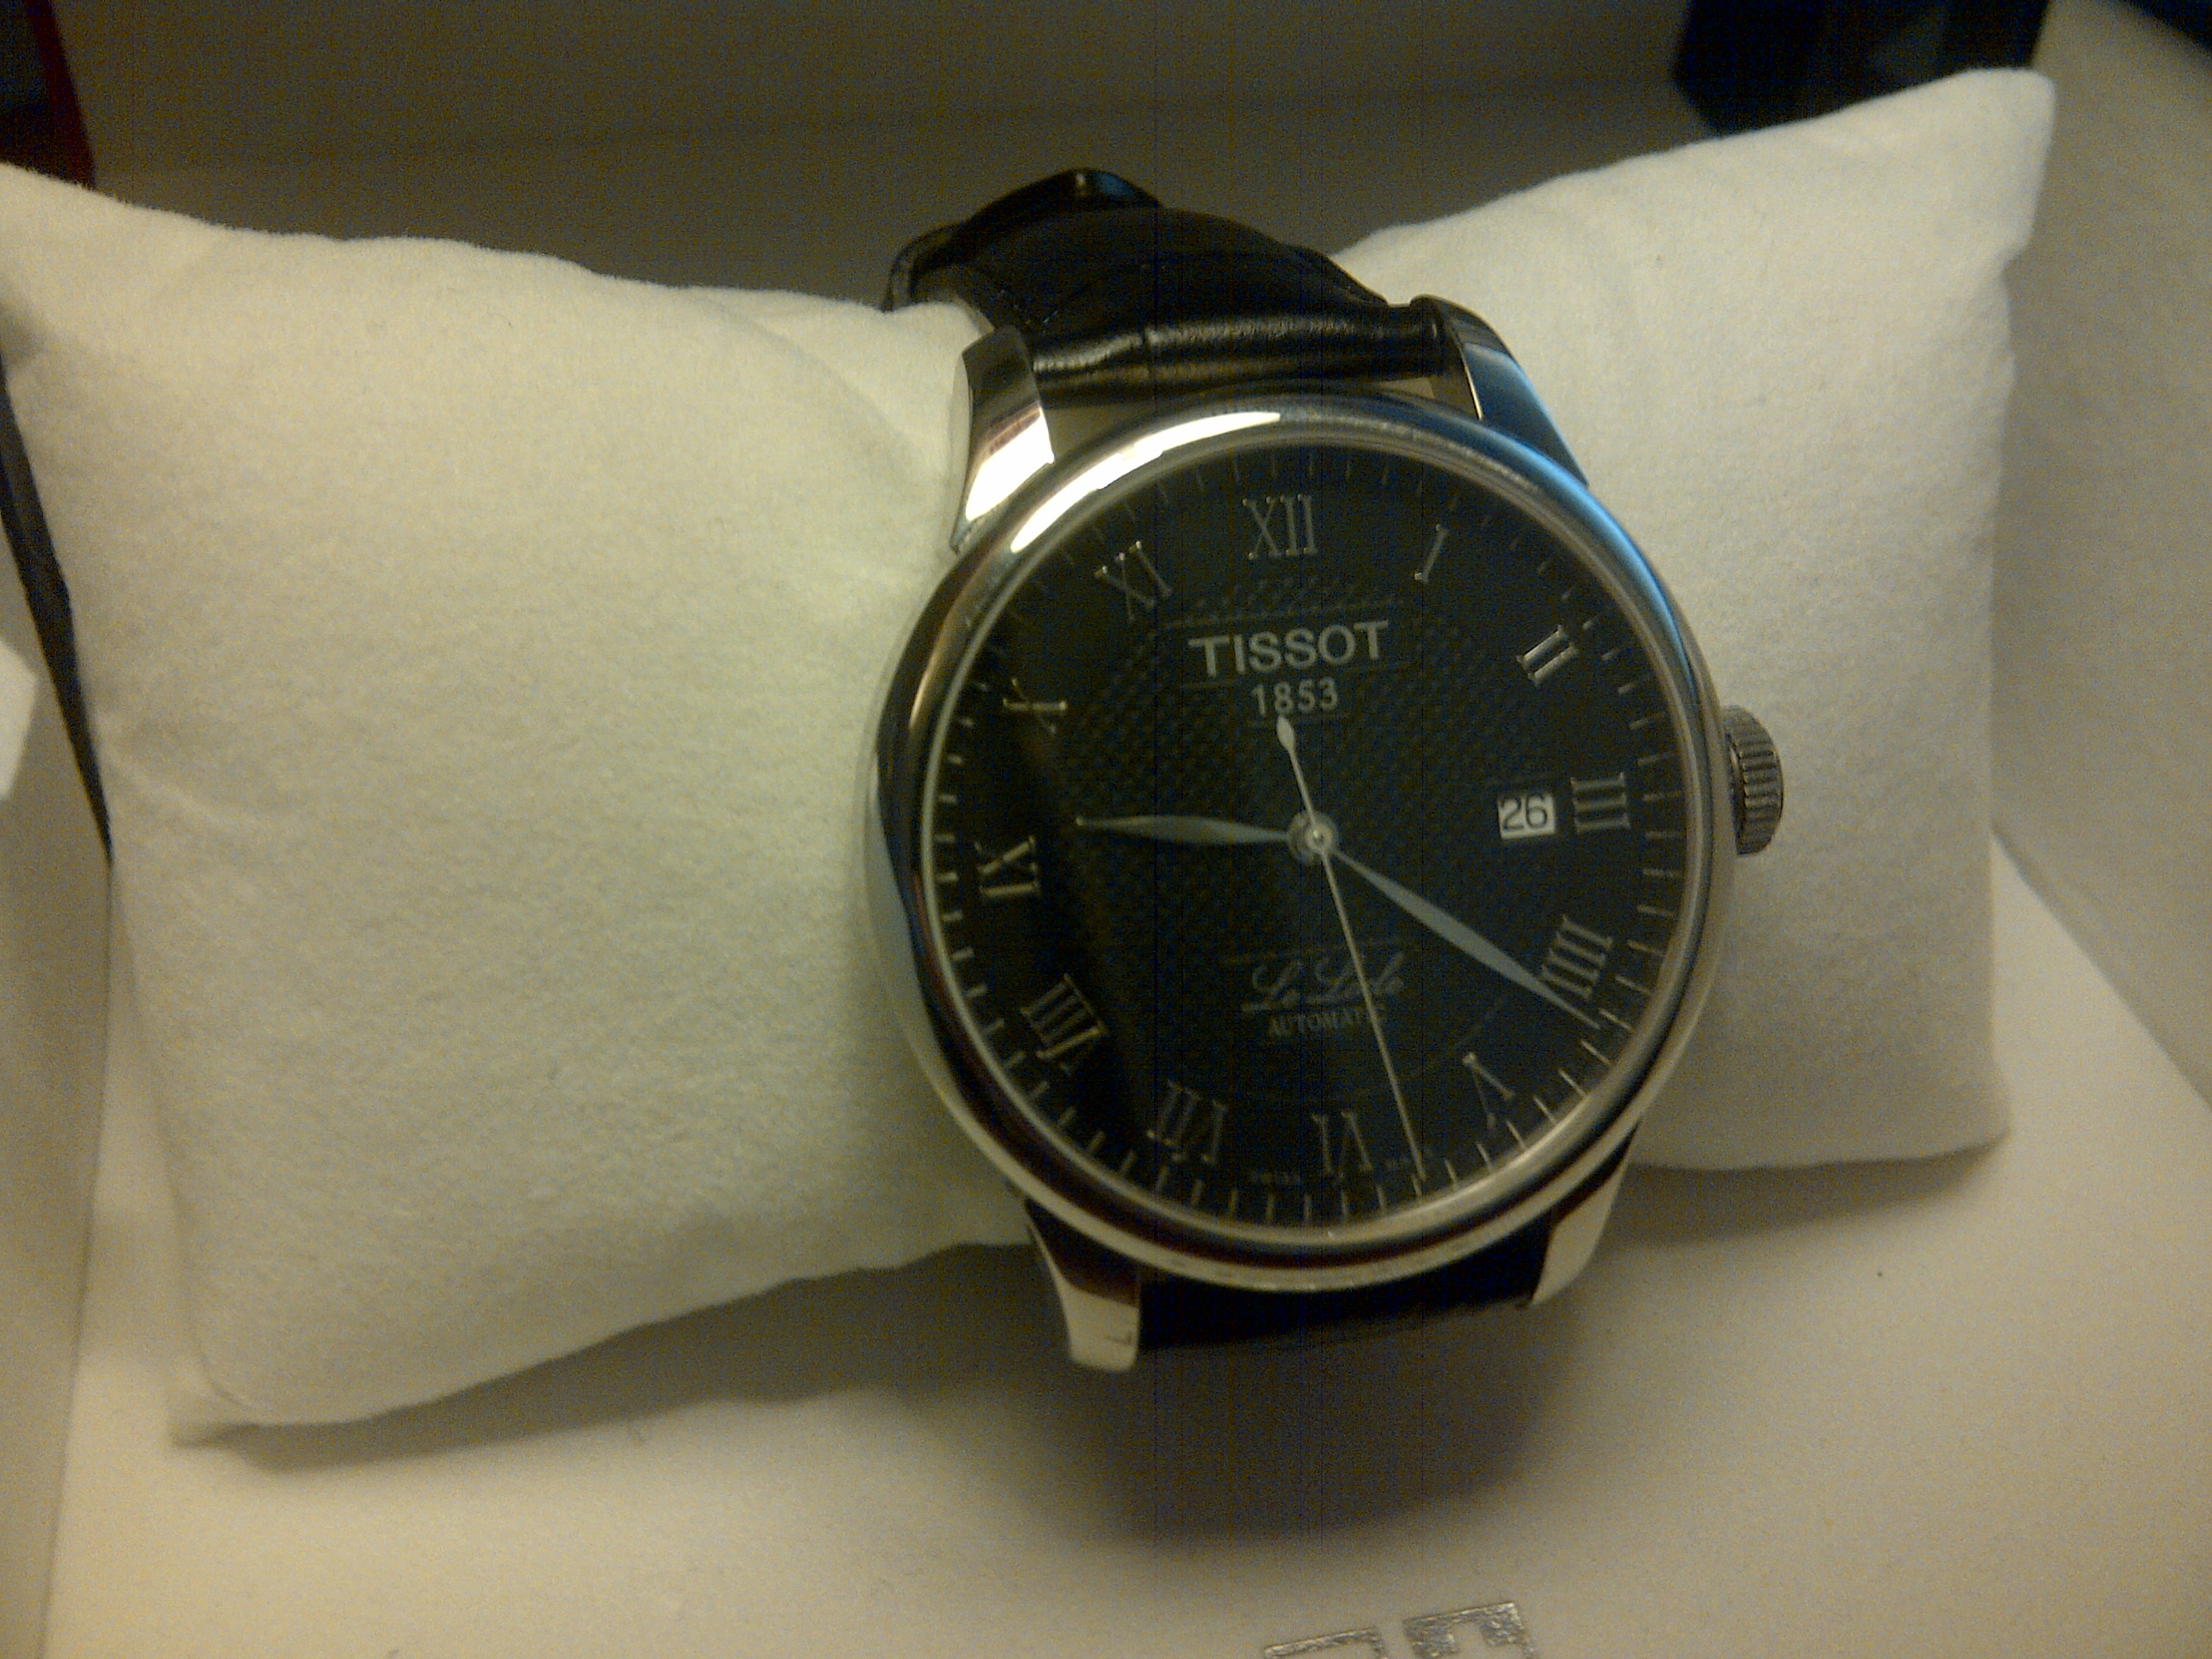 b464548f3 I found myself lucky to buy the last one in stock on this website, as I was  looking for this watch ...